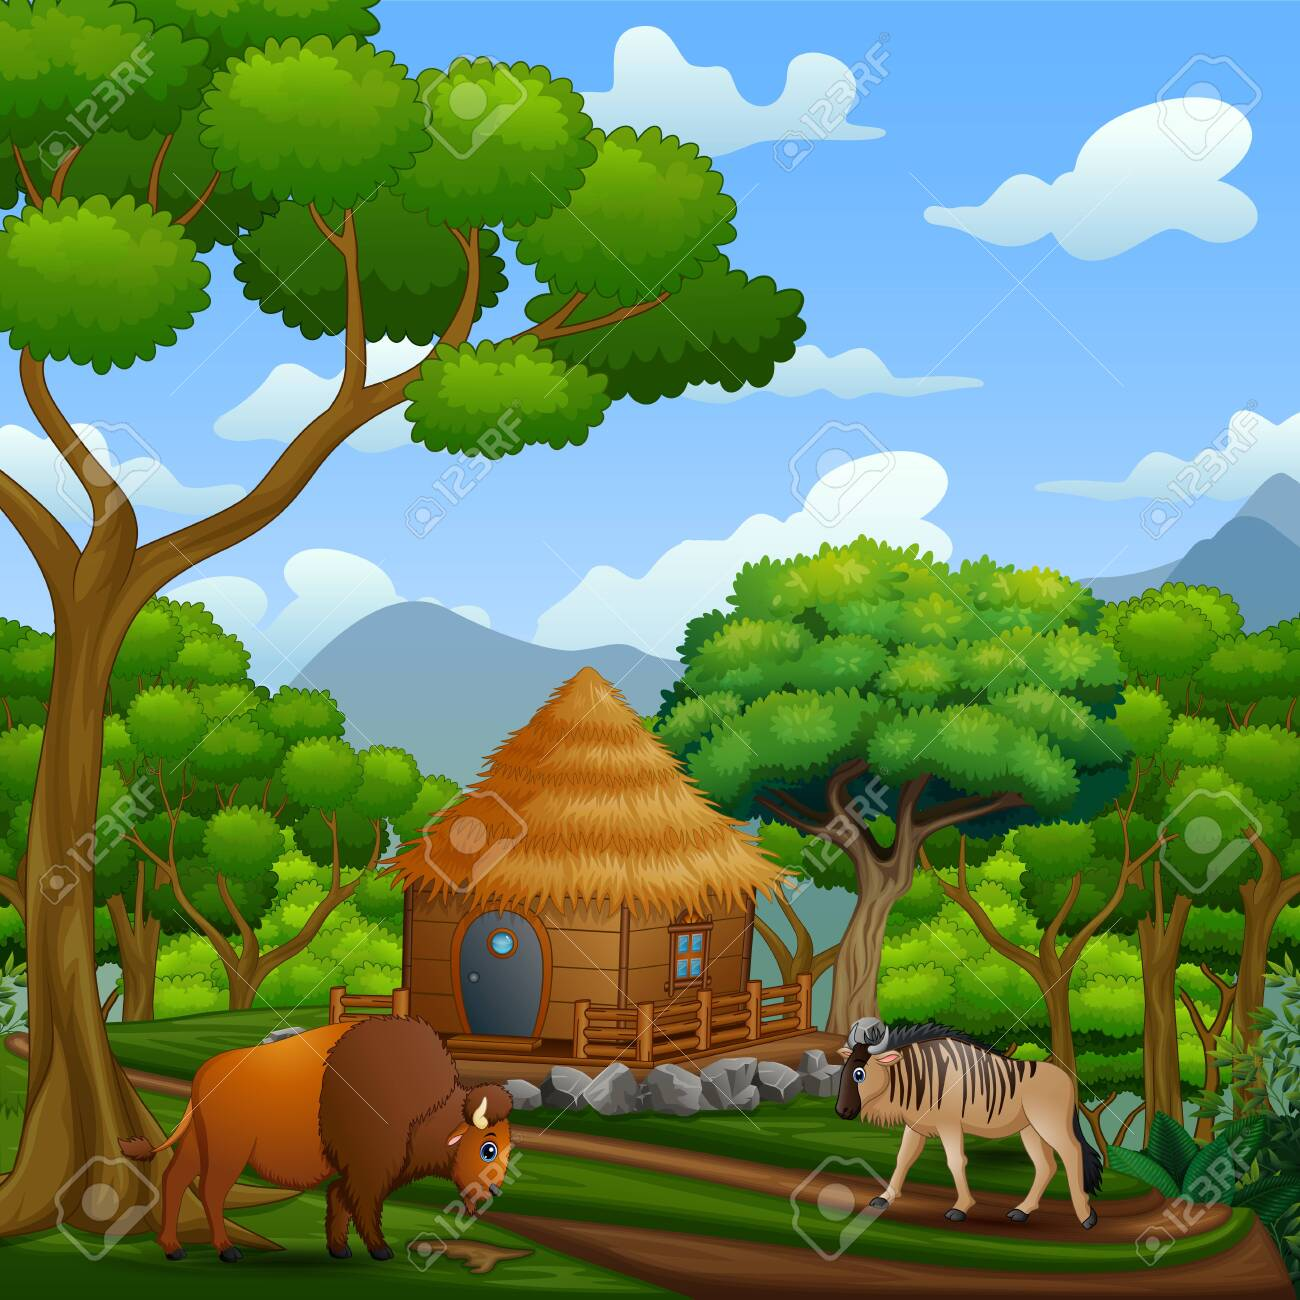 Scene with wooden cottage with animals - 144940271